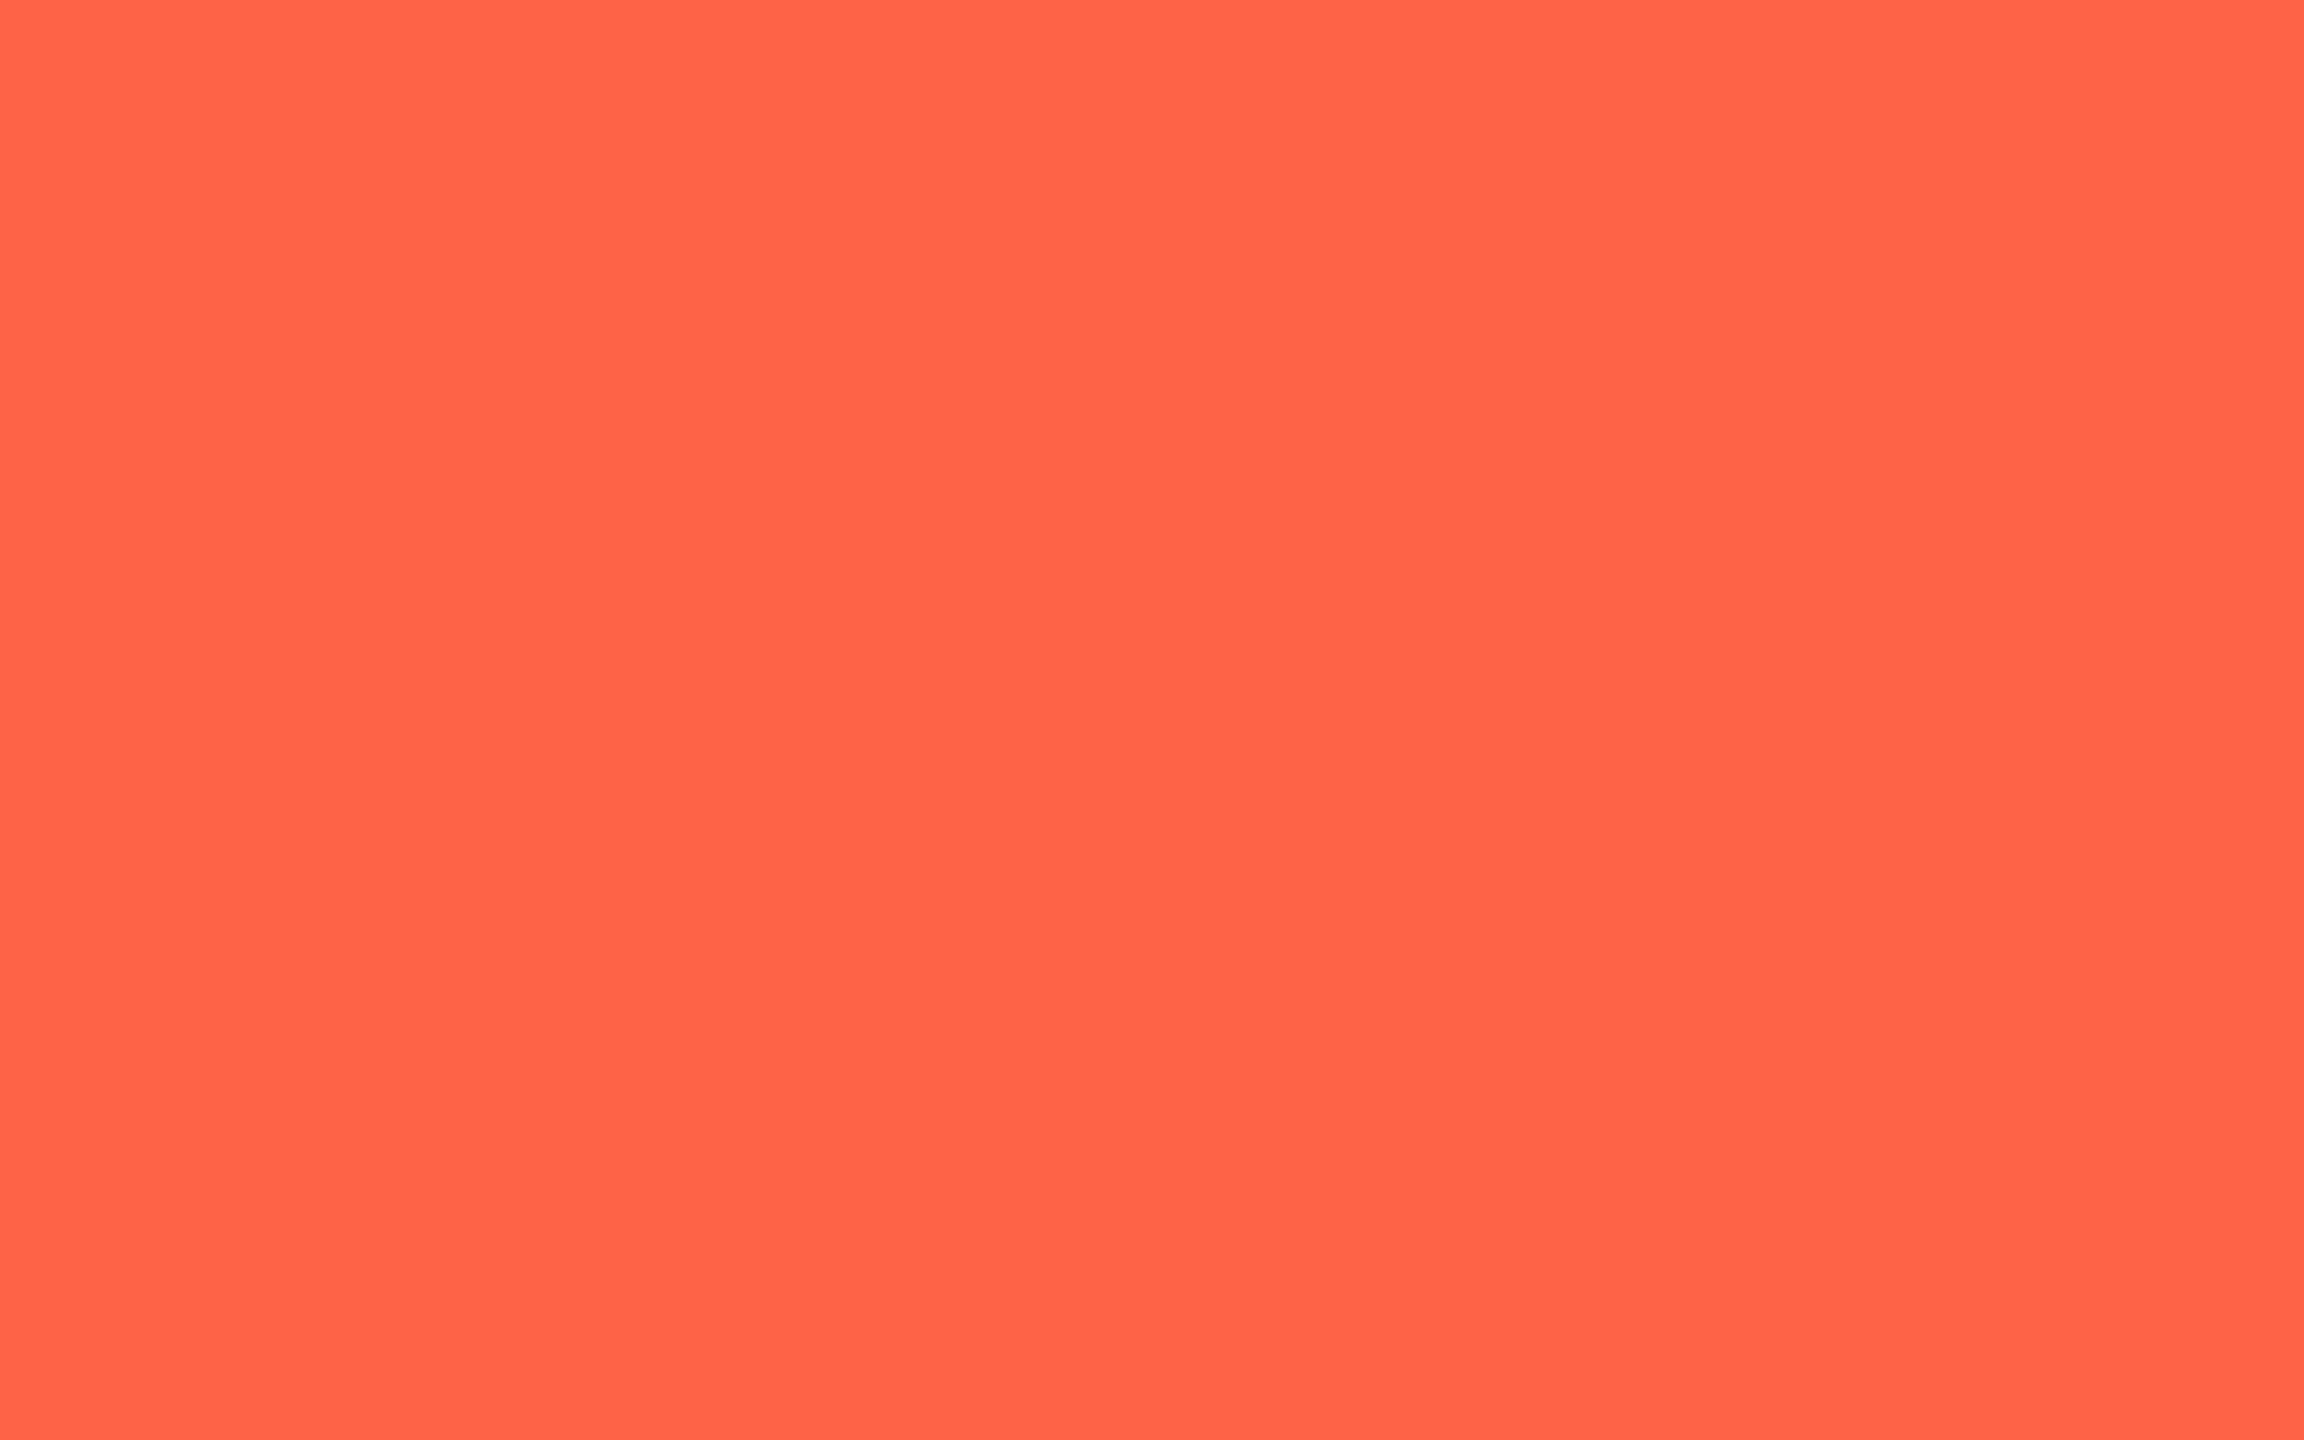 2304x1440 Tomato Solid Color Background